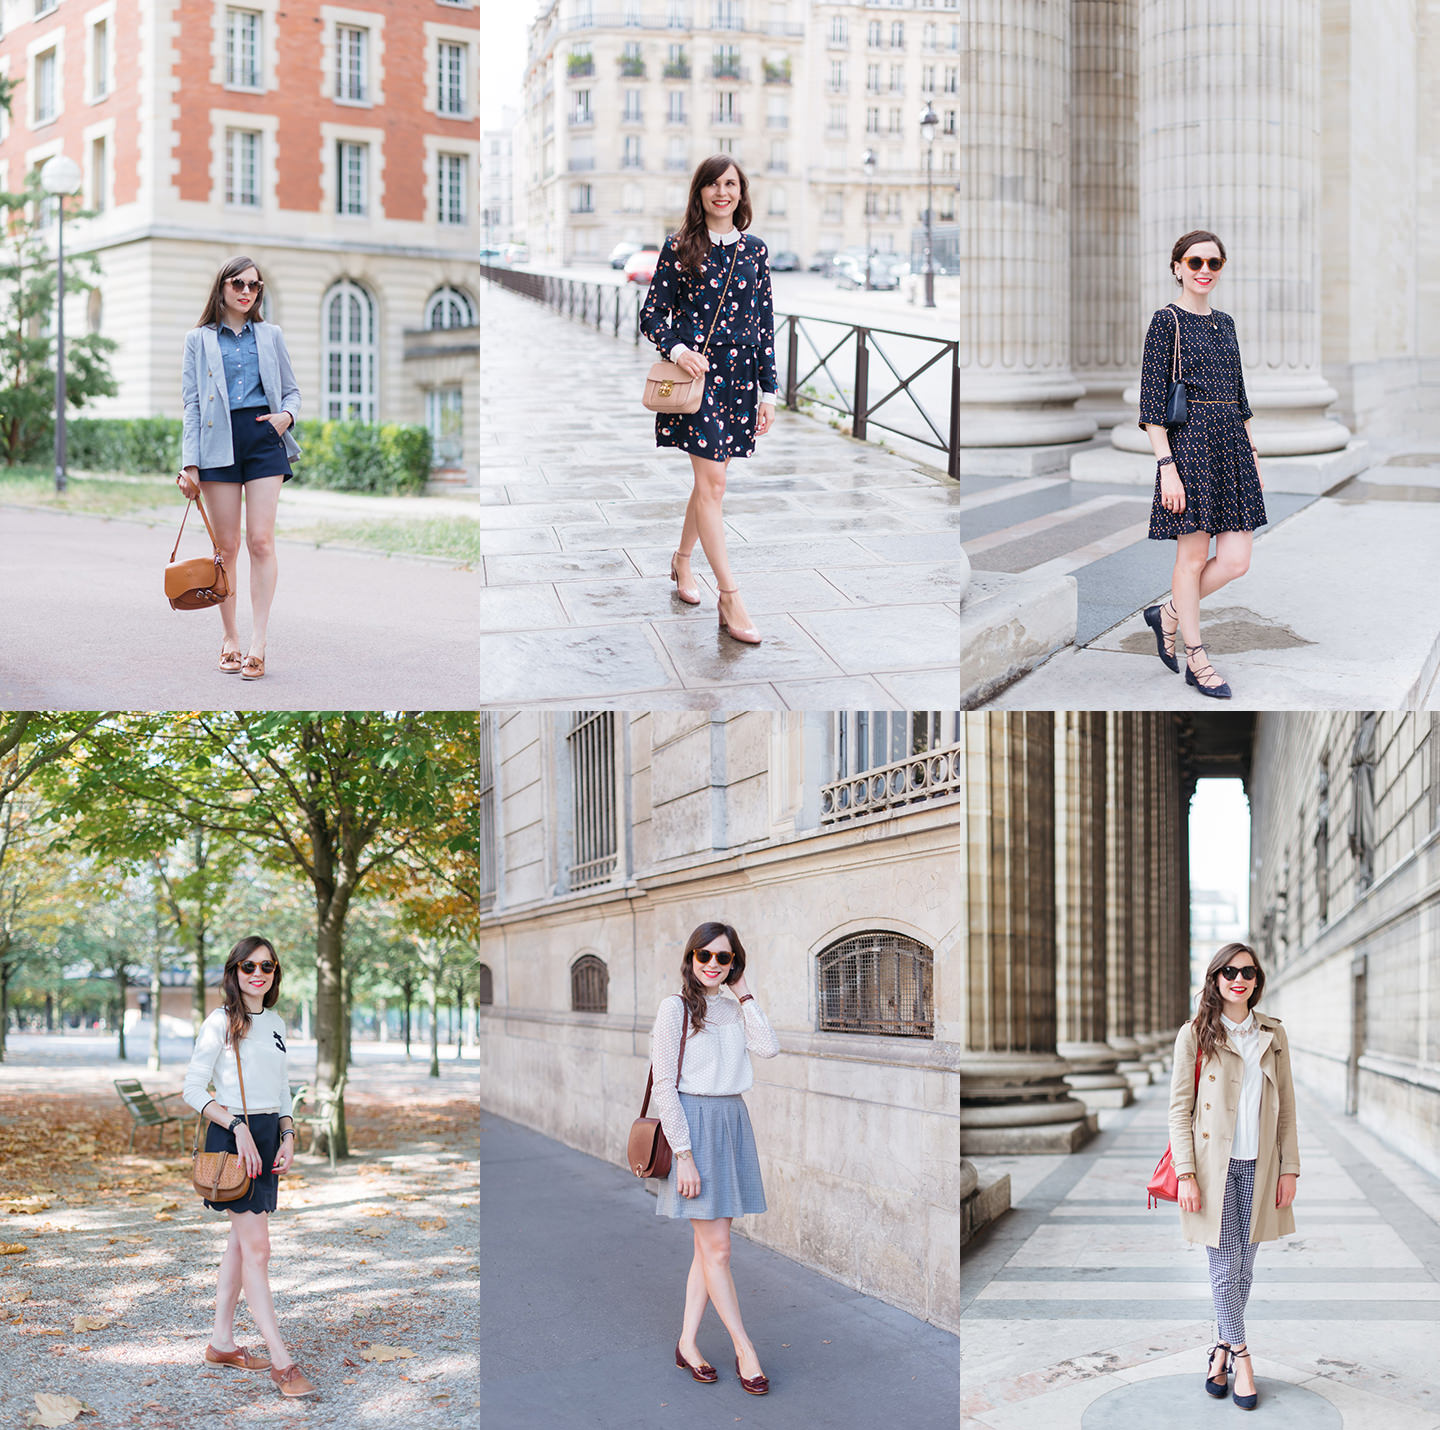 Blog-Mode-And-The-City-Looks-Best-Of-Meilleurs-Looks-2016-Septembre-2016